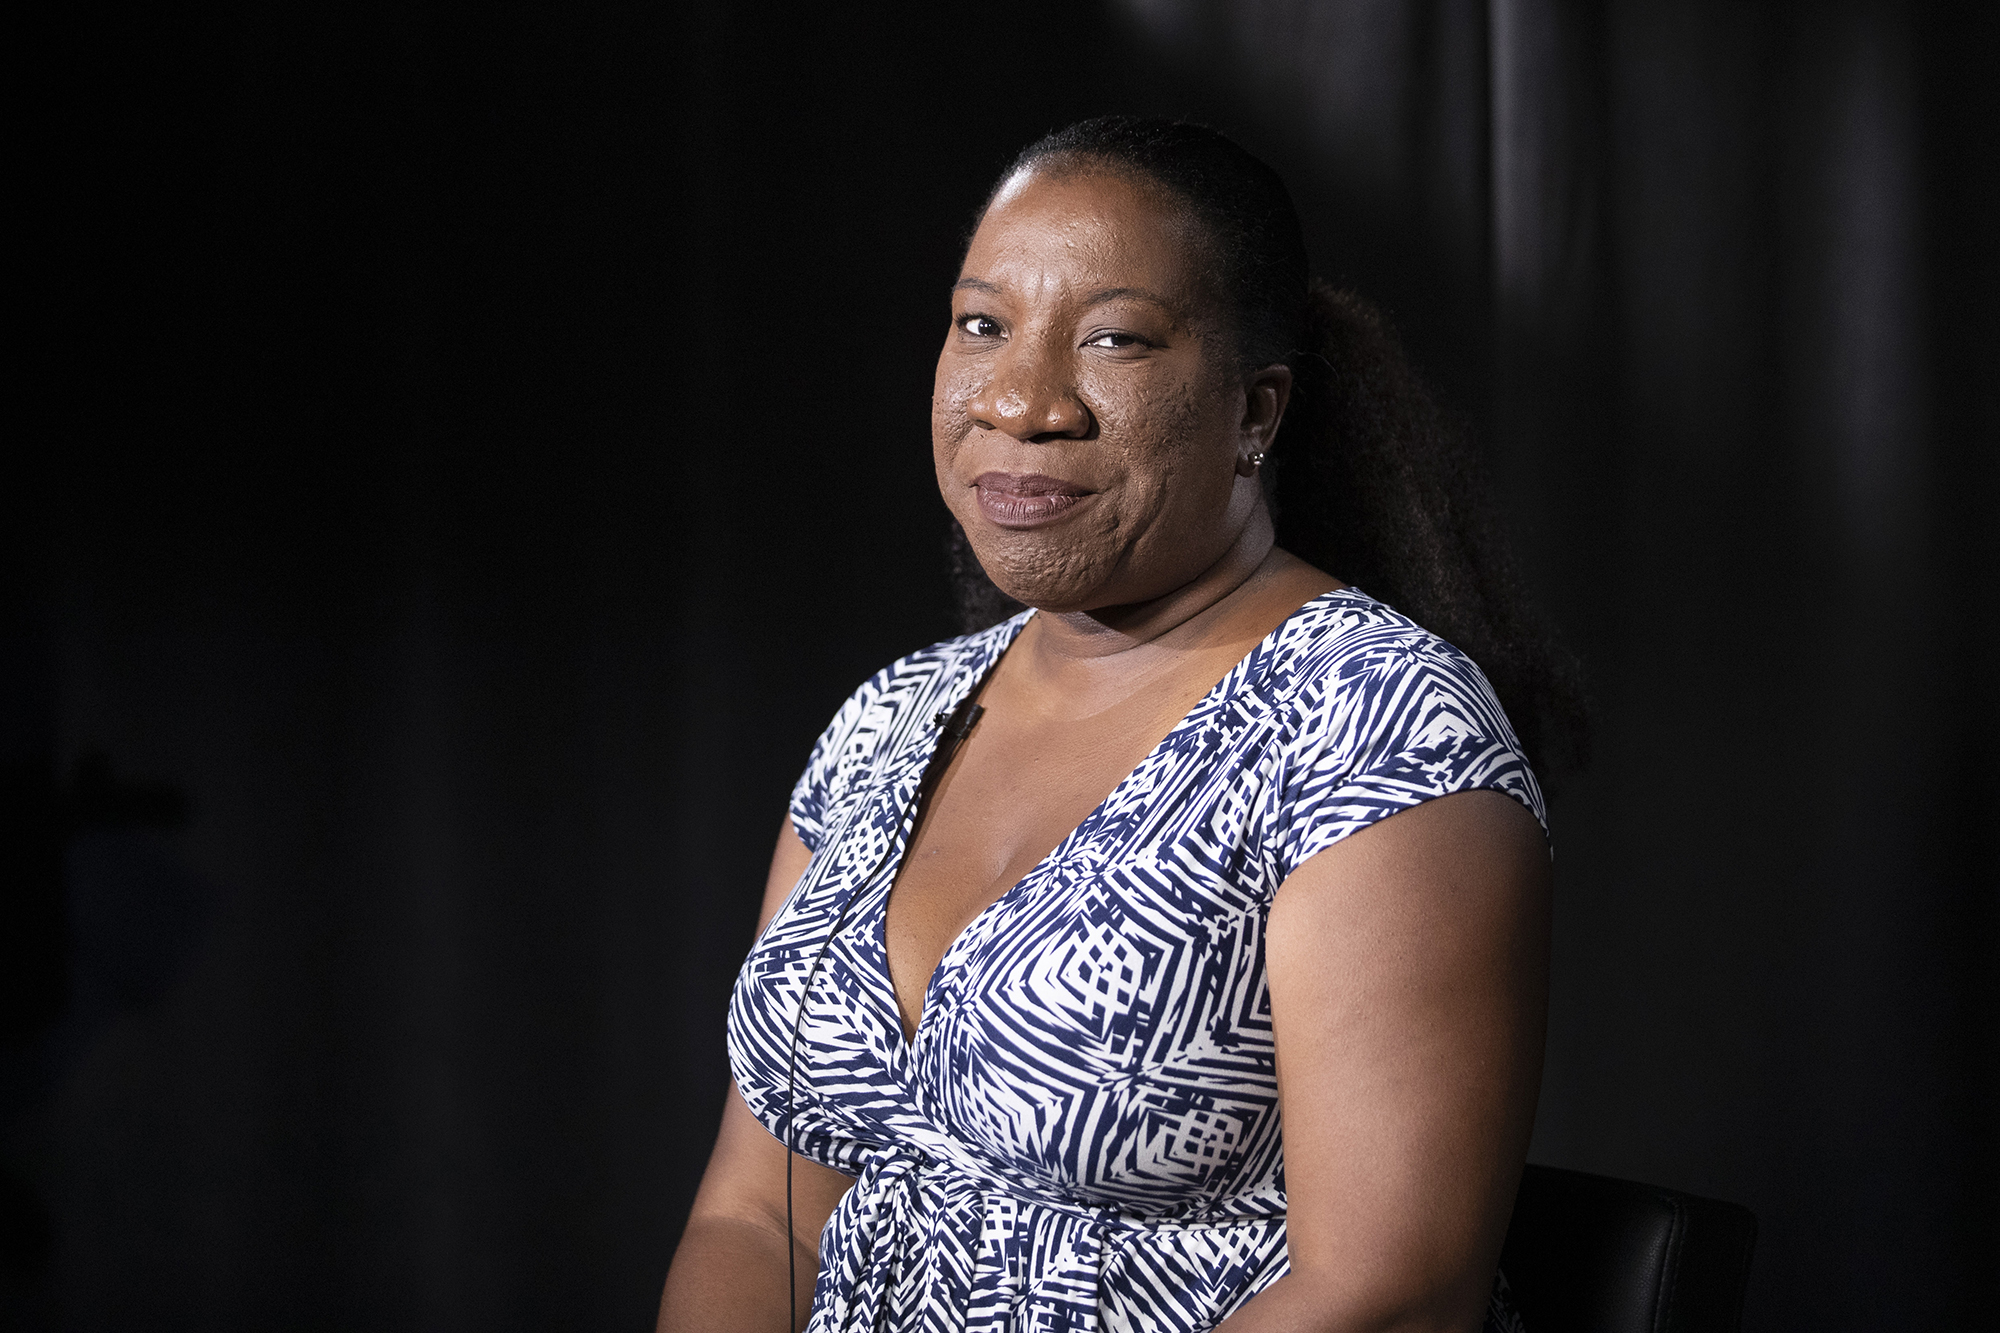 Tarana Burke, founder and leader of the #MeToo movement, poses for a portrait in New York on Friday, October 11, 2019.